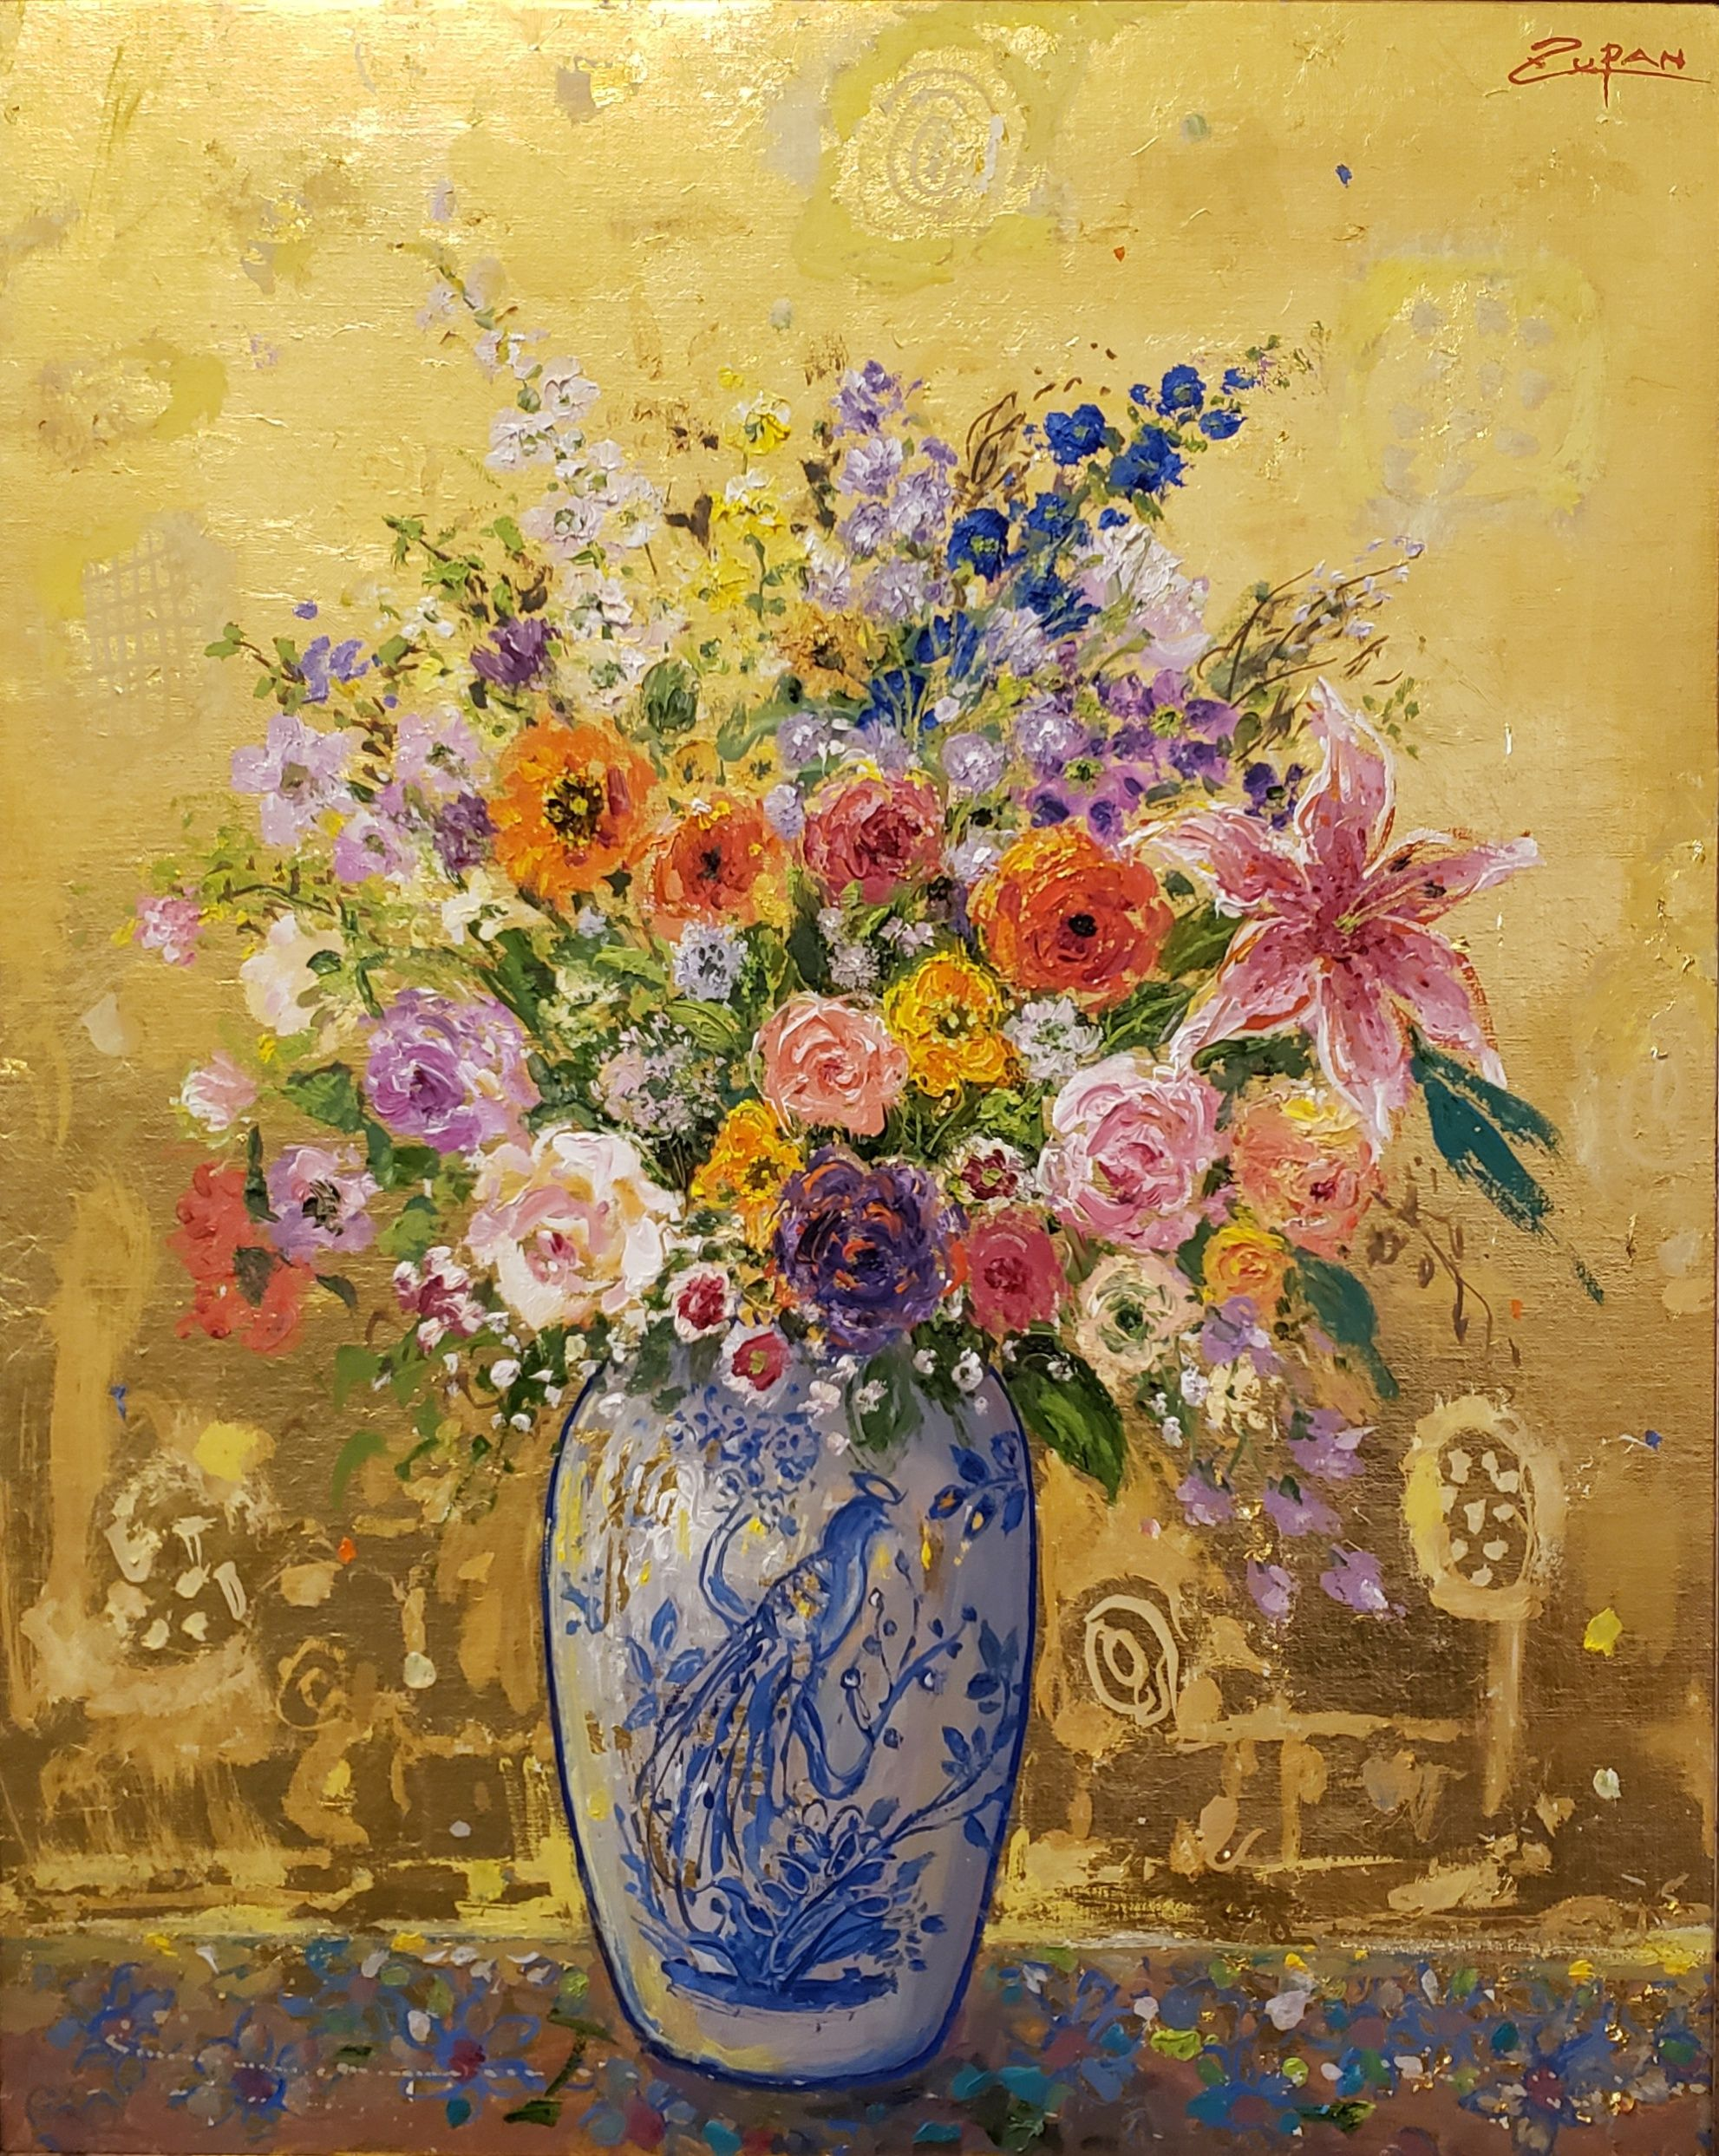 Bruno Zupan - Bouquet on Golden Bouquet, 2019; Painting; Original oil on canvas; Signed; Fine Art; Off The Wall Gallery Houston.